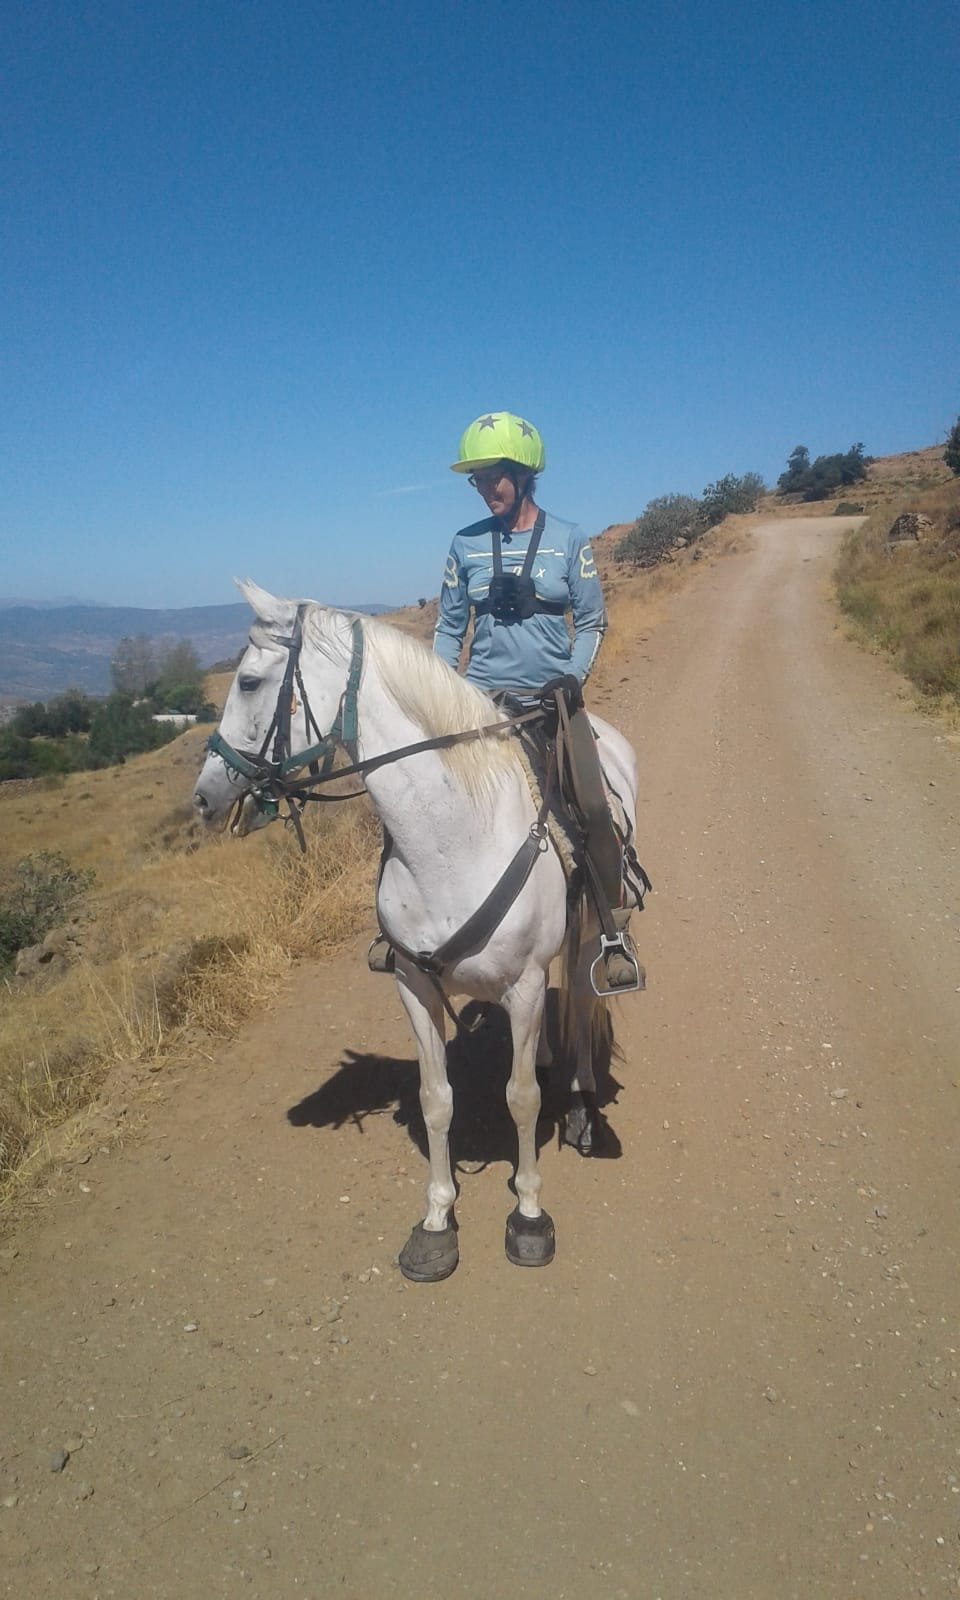 Me riding a grey horse, Piper, out on the sierra